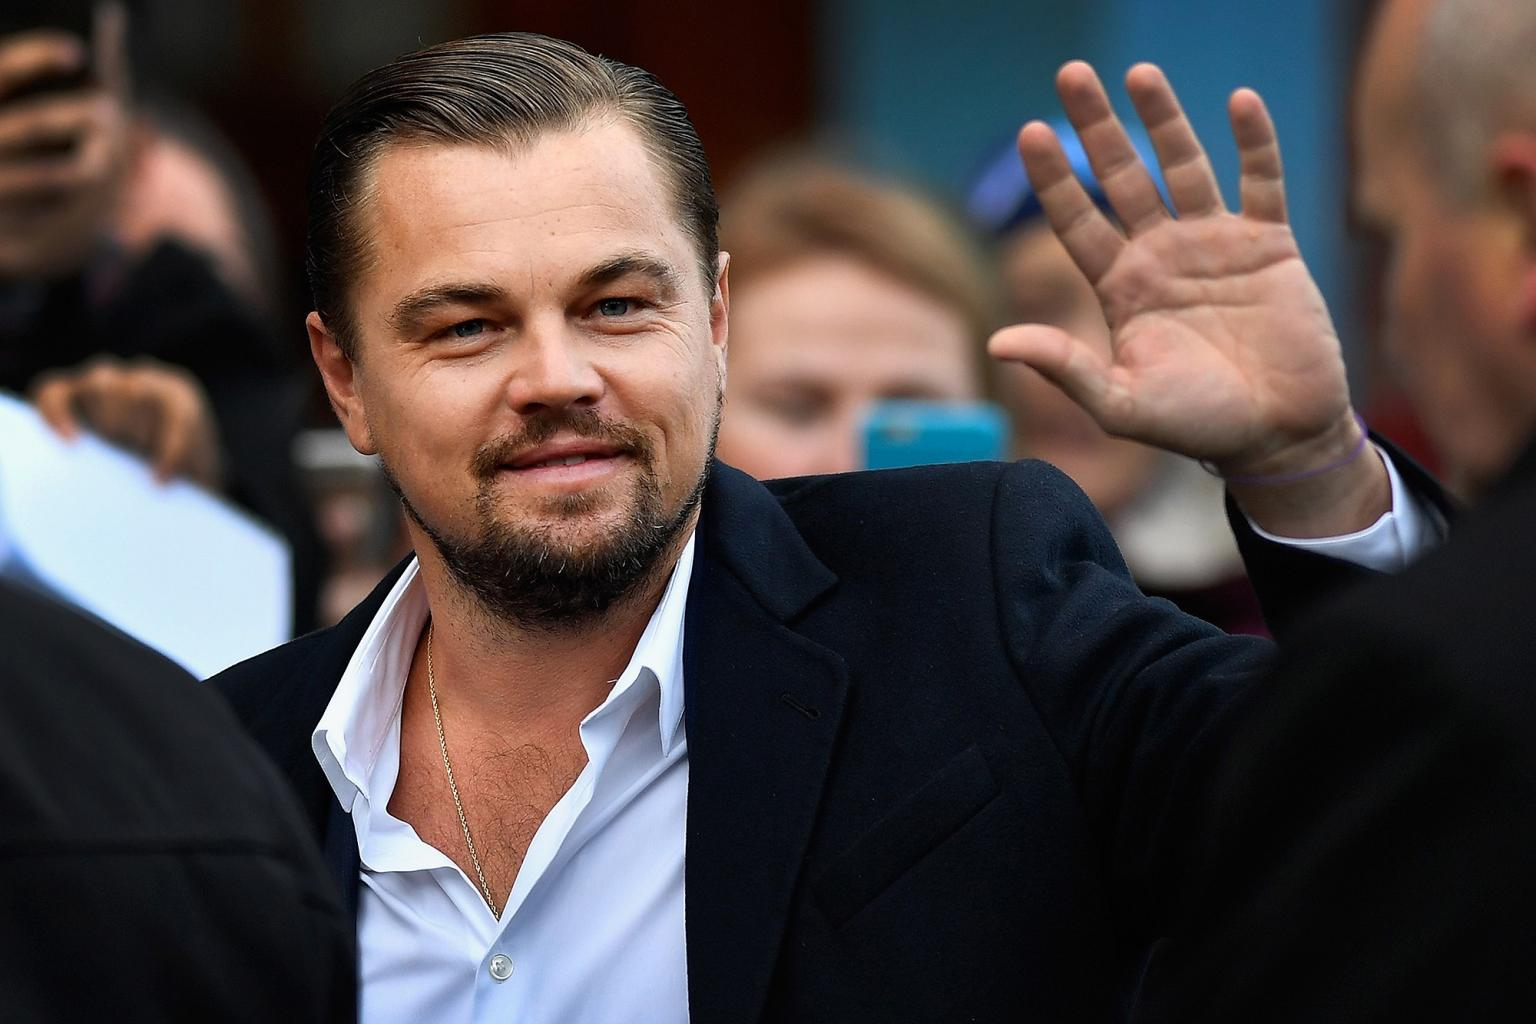 Leonardo DiCaprio Lunches at Edinburgh Café to Support Charity During Visit to Scotland